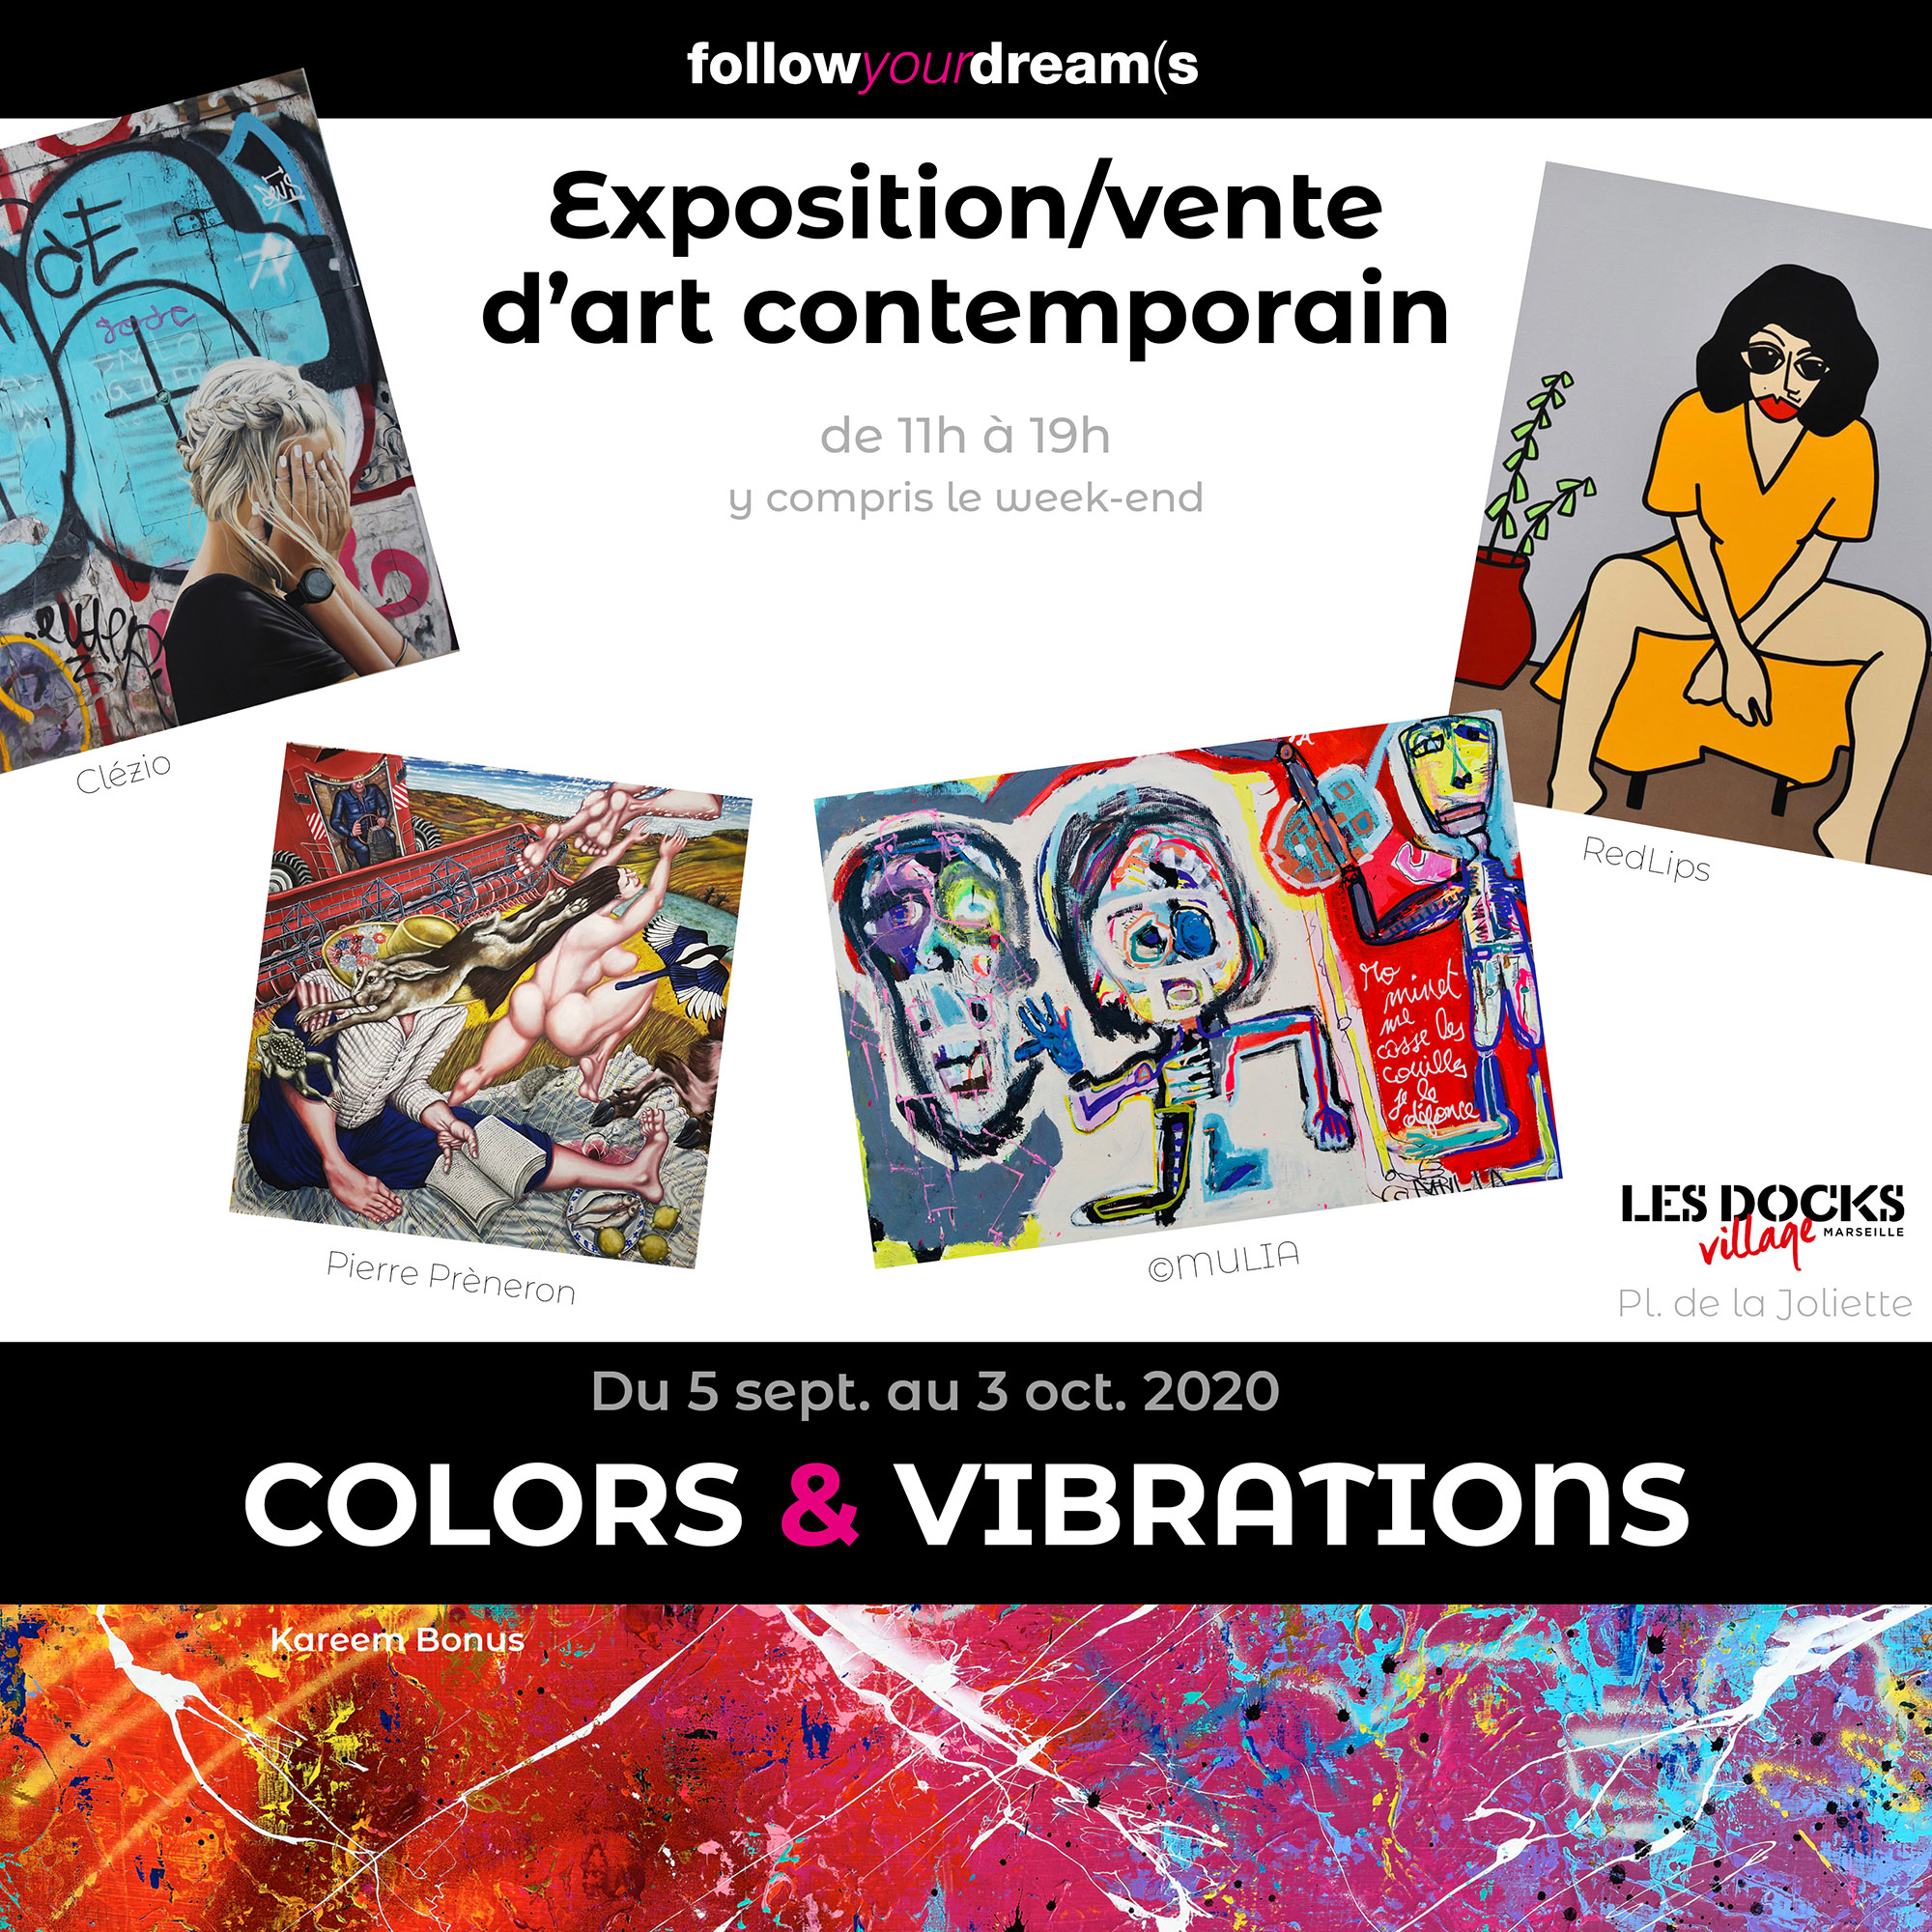 colors & vibrations exposition art contemporain docks village